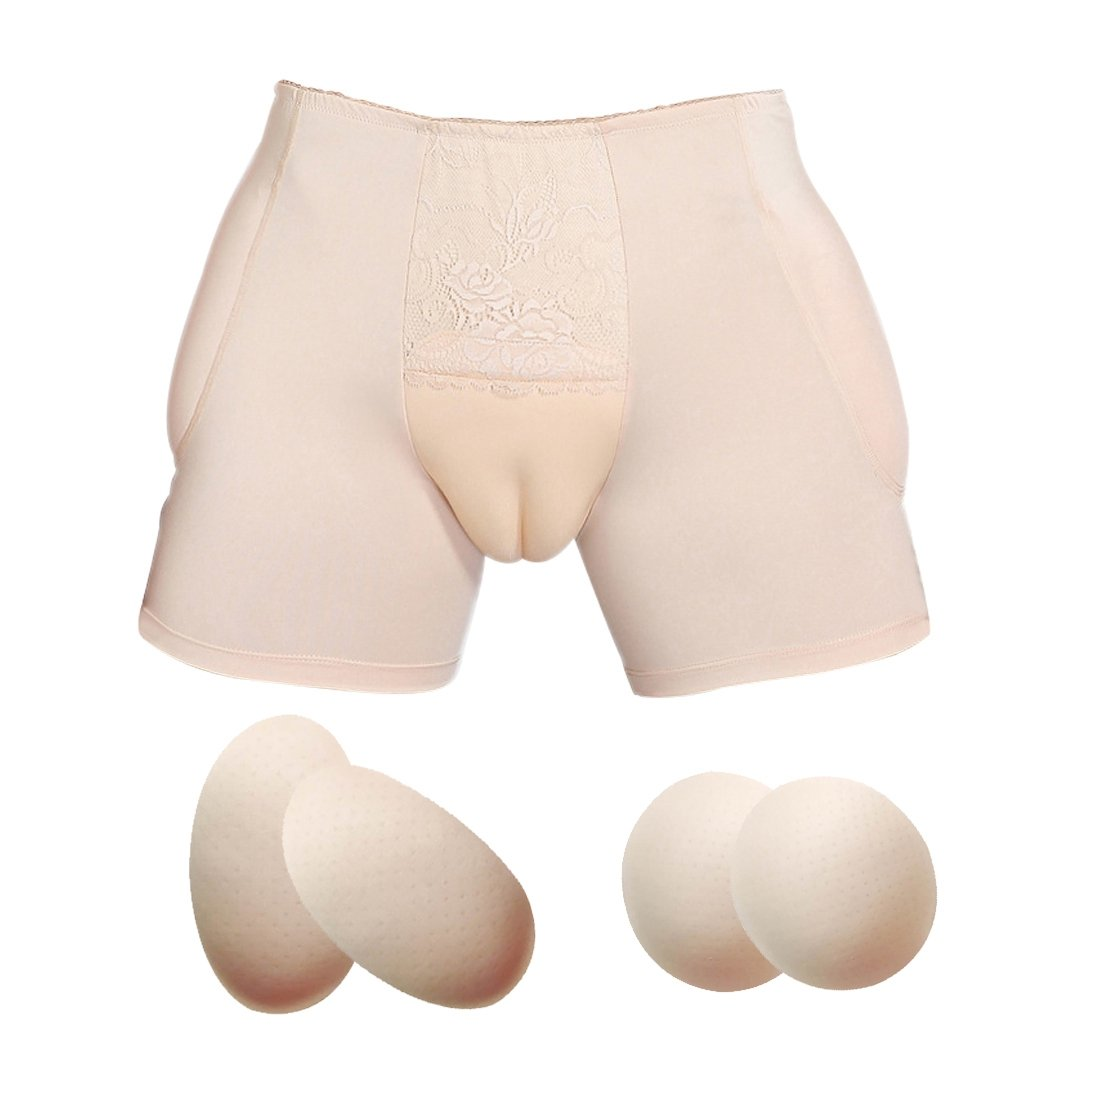 Xingyue Camel Toe Shaper Brief Hiding Gaff Panty for Men Crossdresser YV0201-1-2M/XYCA